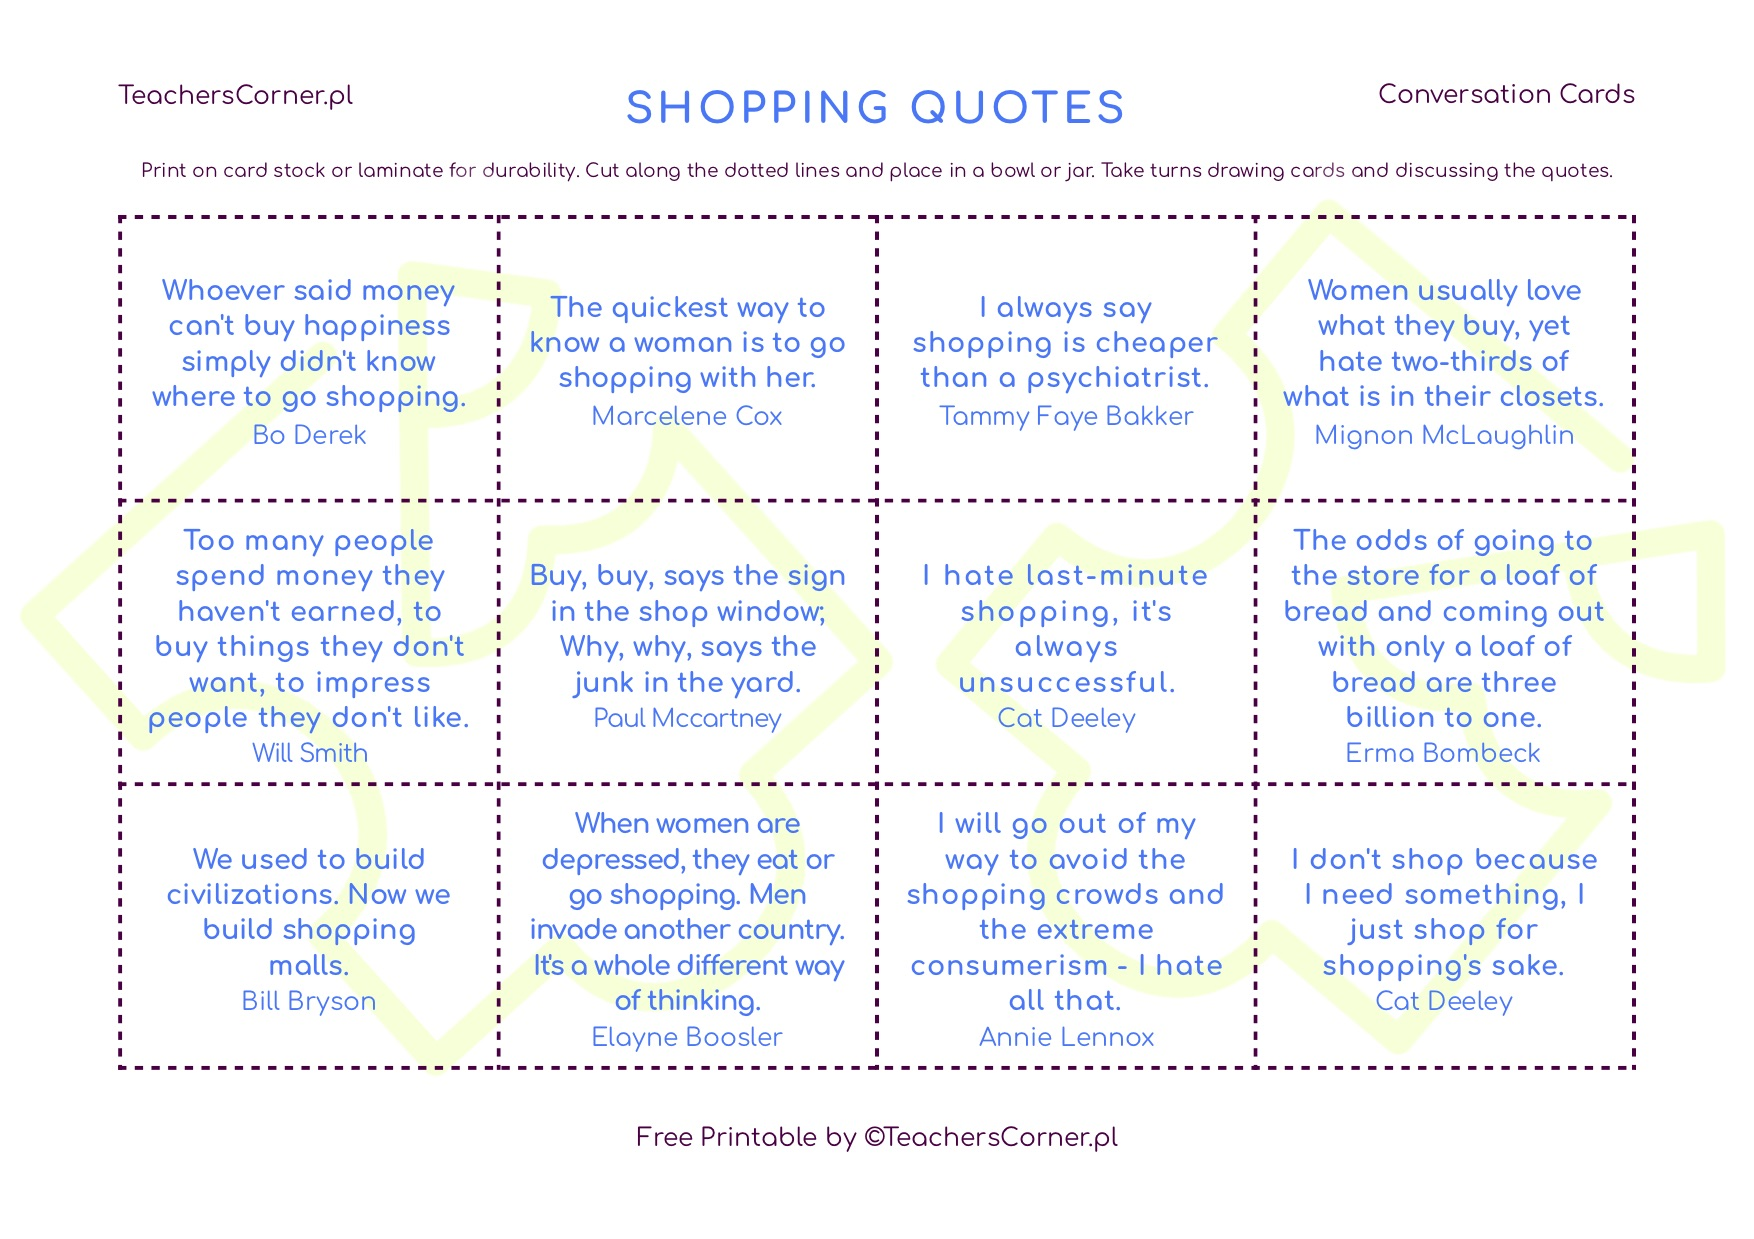 discuss shopping quotes